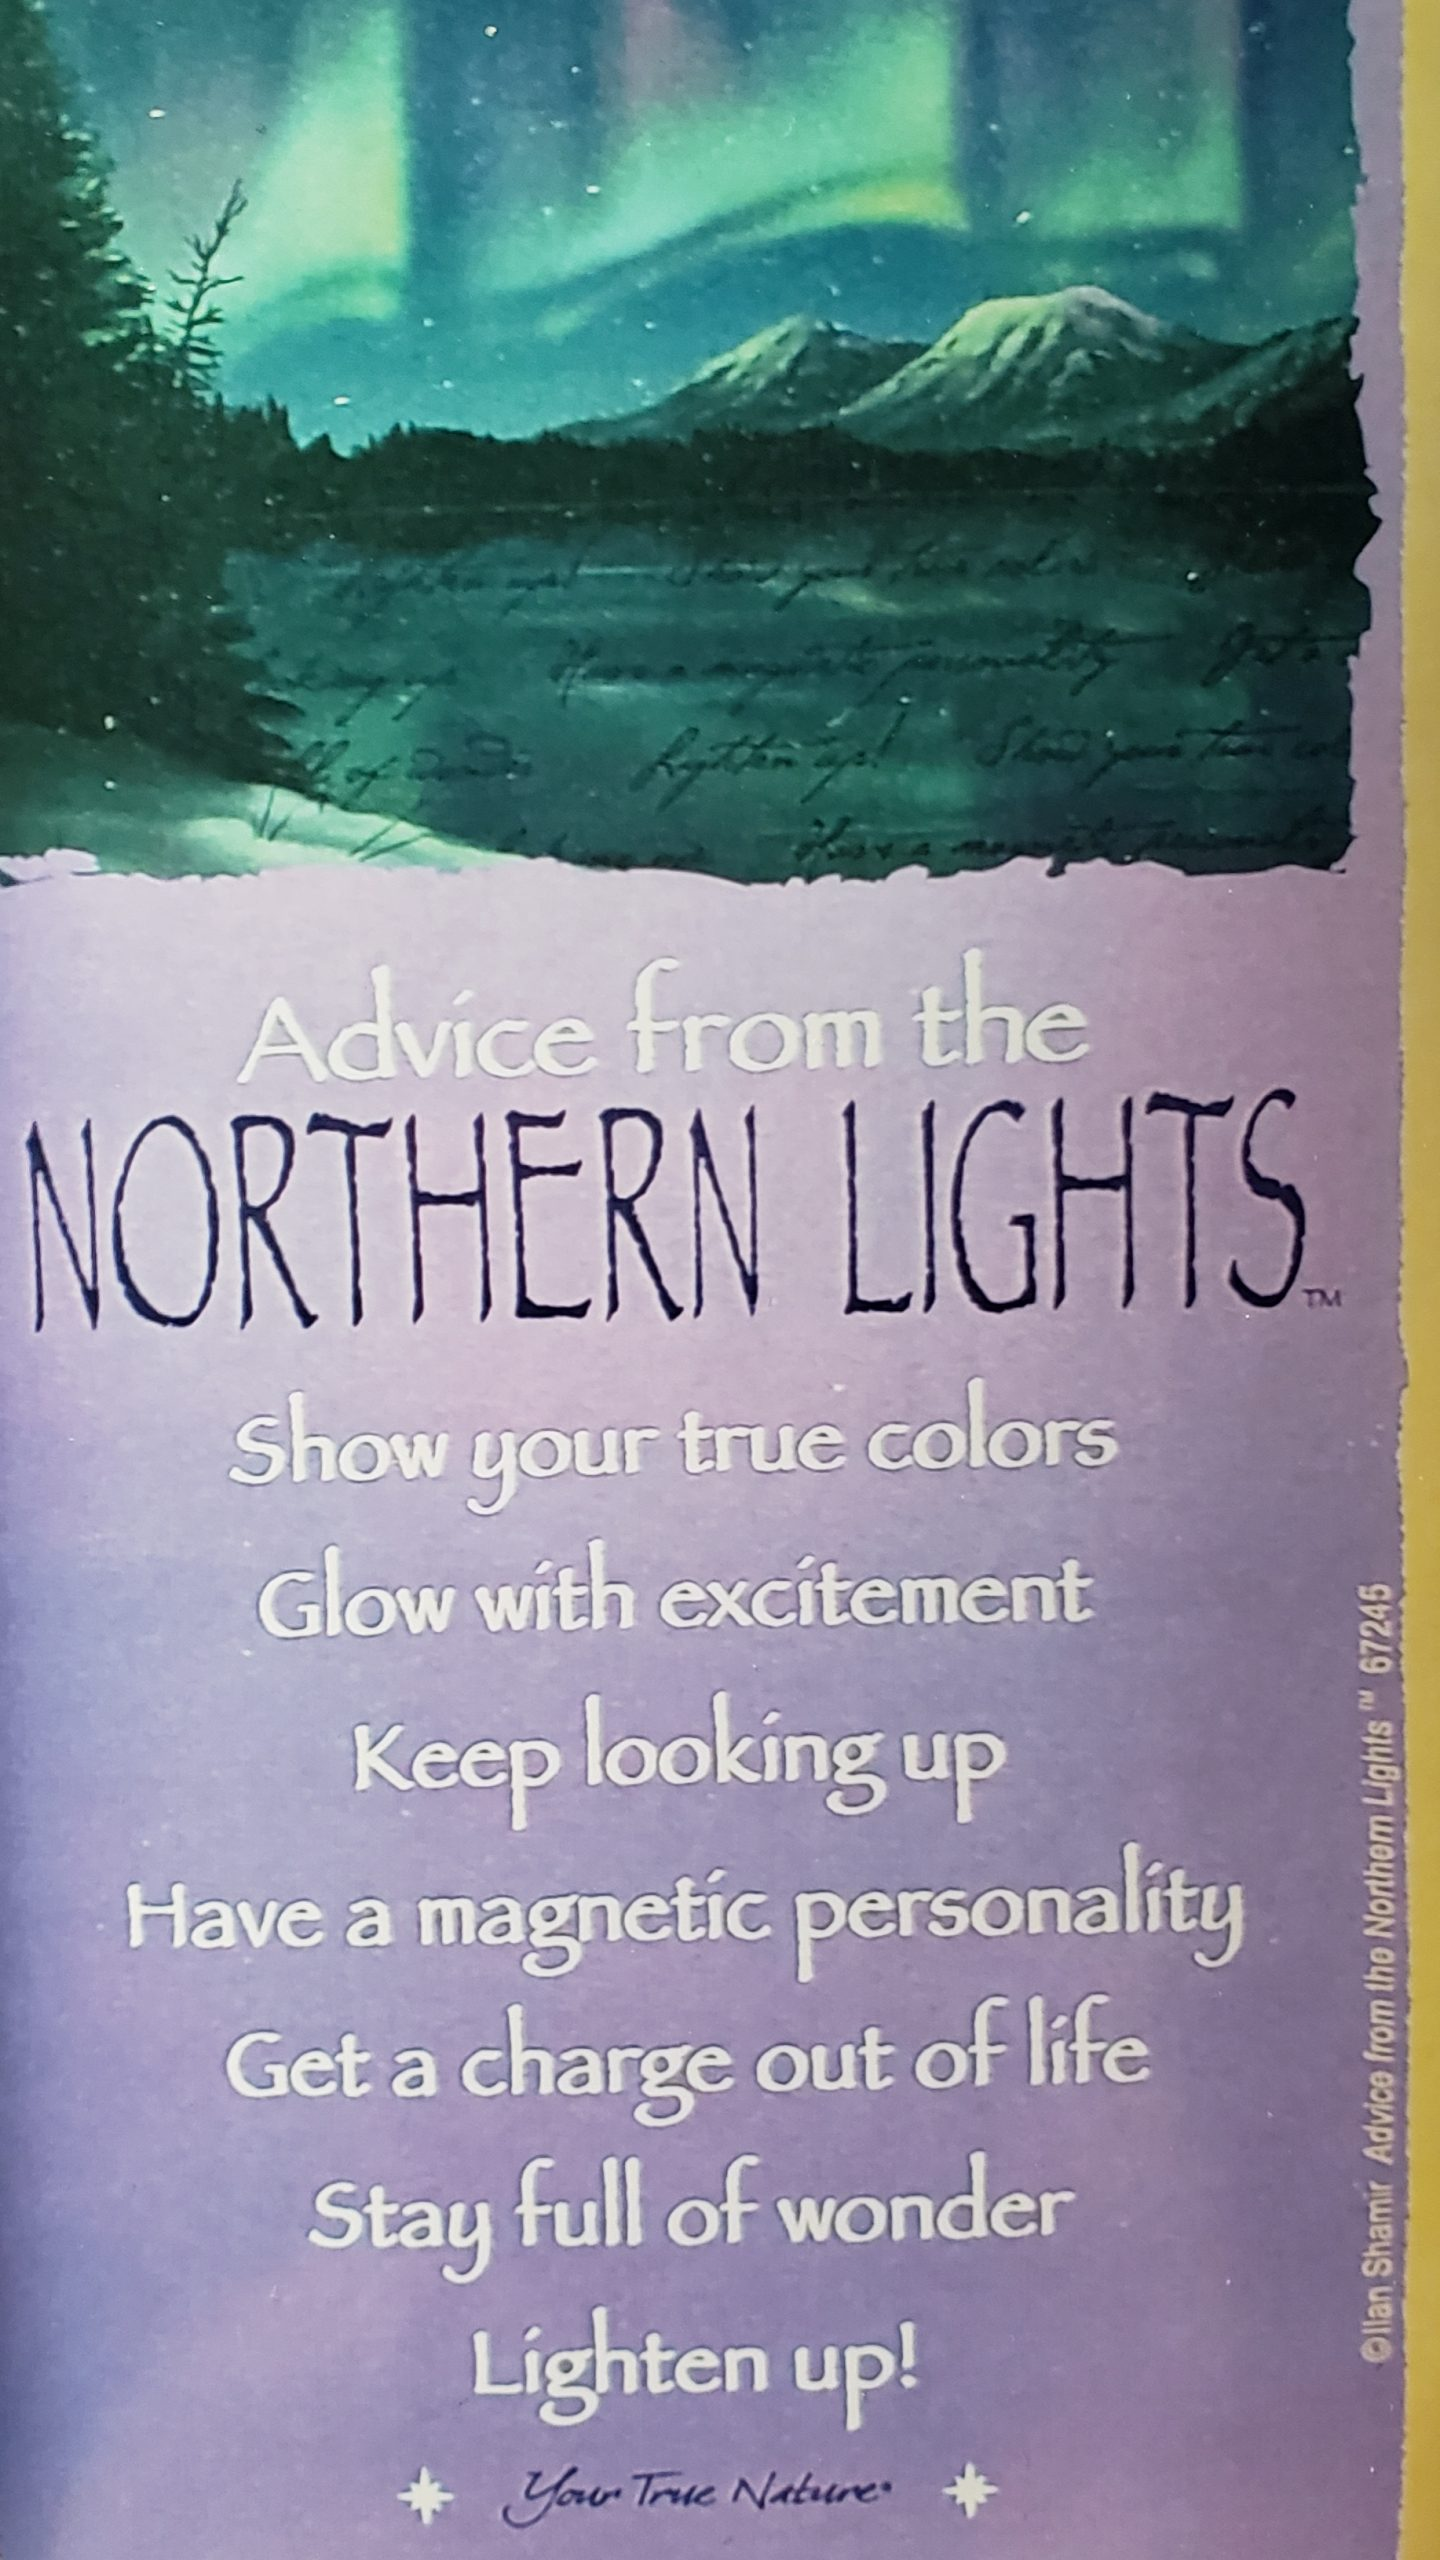 Advice from Northen Lights